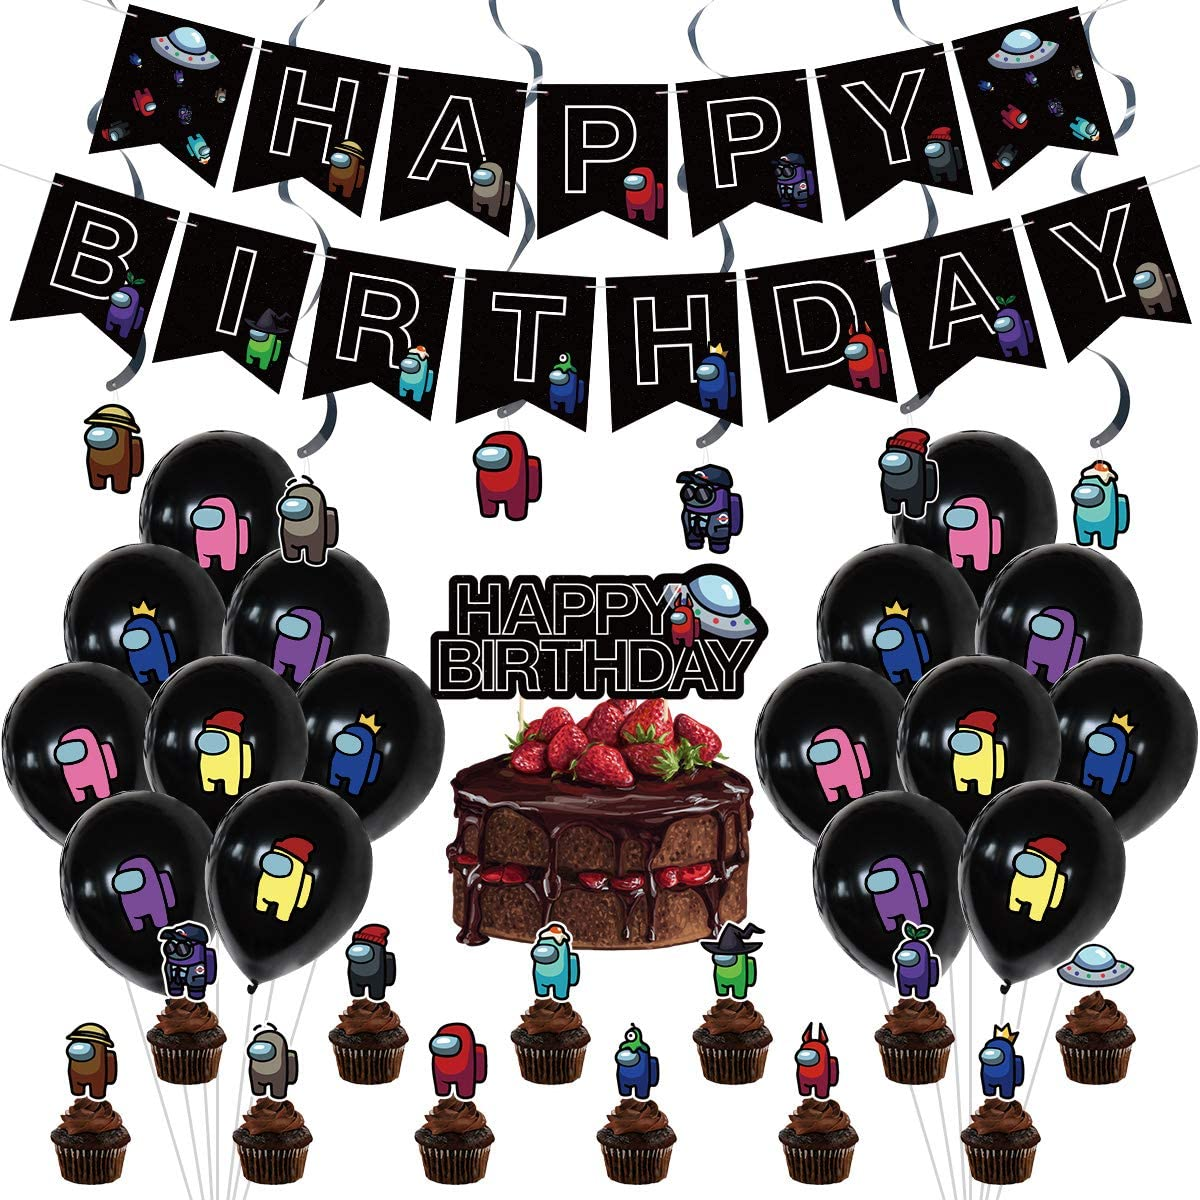 Plastic Swirls Party Supplies Includes Happy Birthday Banner Among Us Party Decorations,Game Among Us Crewman Birthday Party,Among Us Party Favors Cake Topper Balloons Cupcake Topper Among Us Stickers